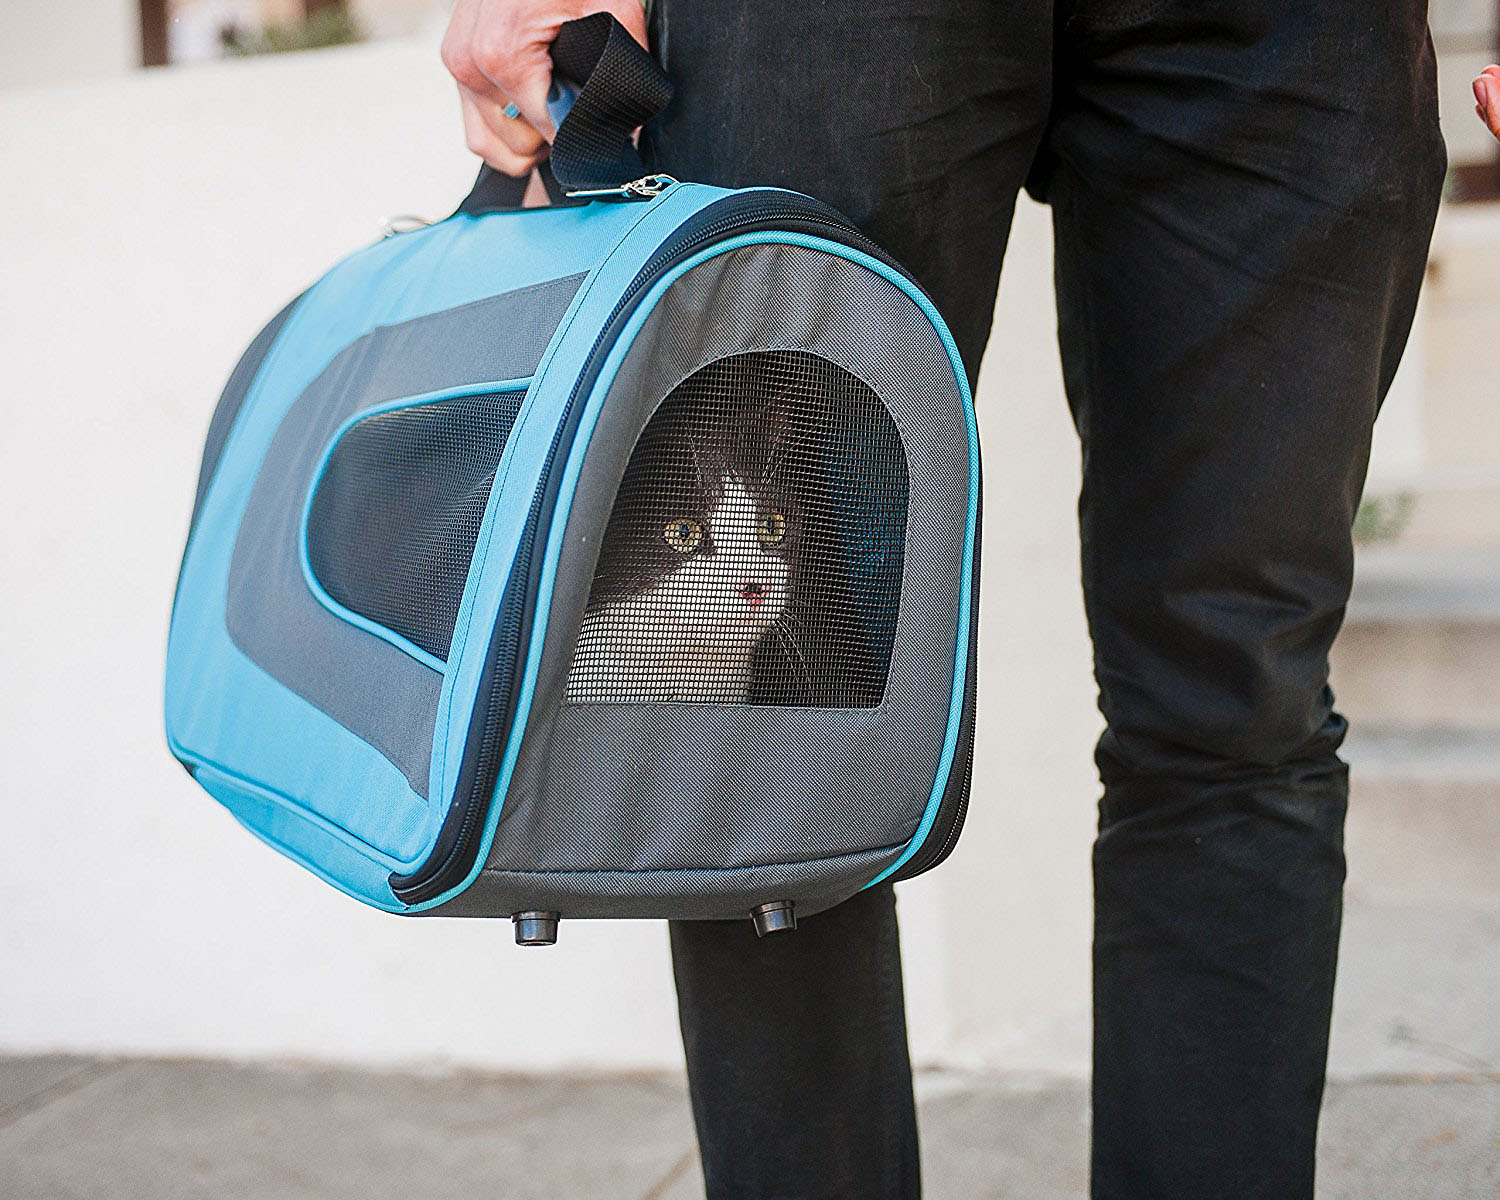 Soft-Sided Cat Carrier Small Dogs Pet Travel Portable Kennel with Comfortable Padding Inside Pet Bag